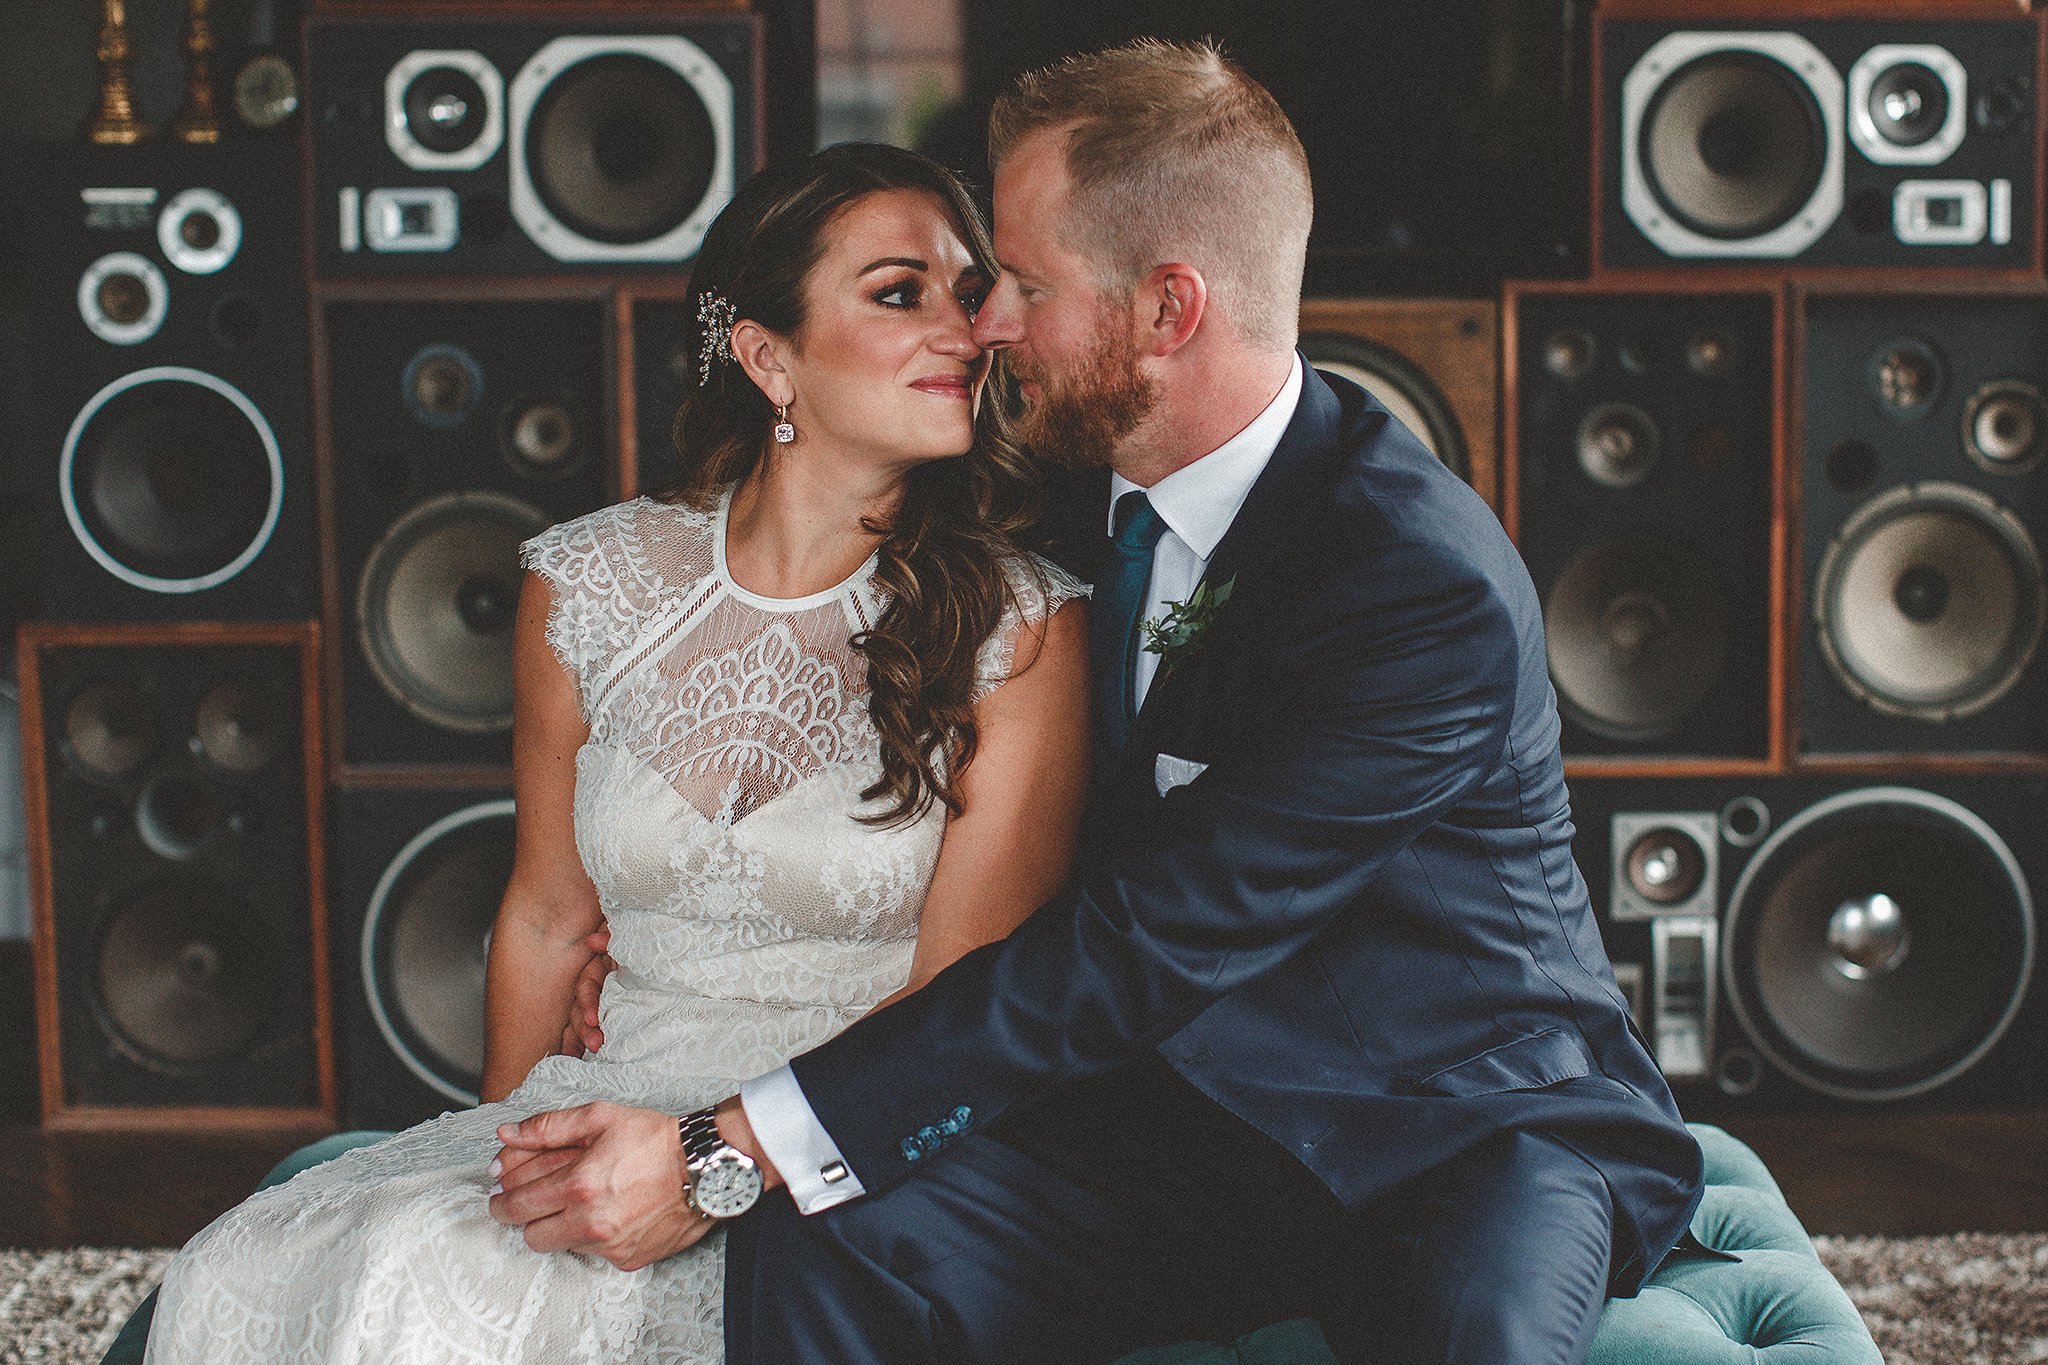 bride/groom portrait in front of vintage speakers | the ivy house milwaukee wedding photographer | chrissy deming